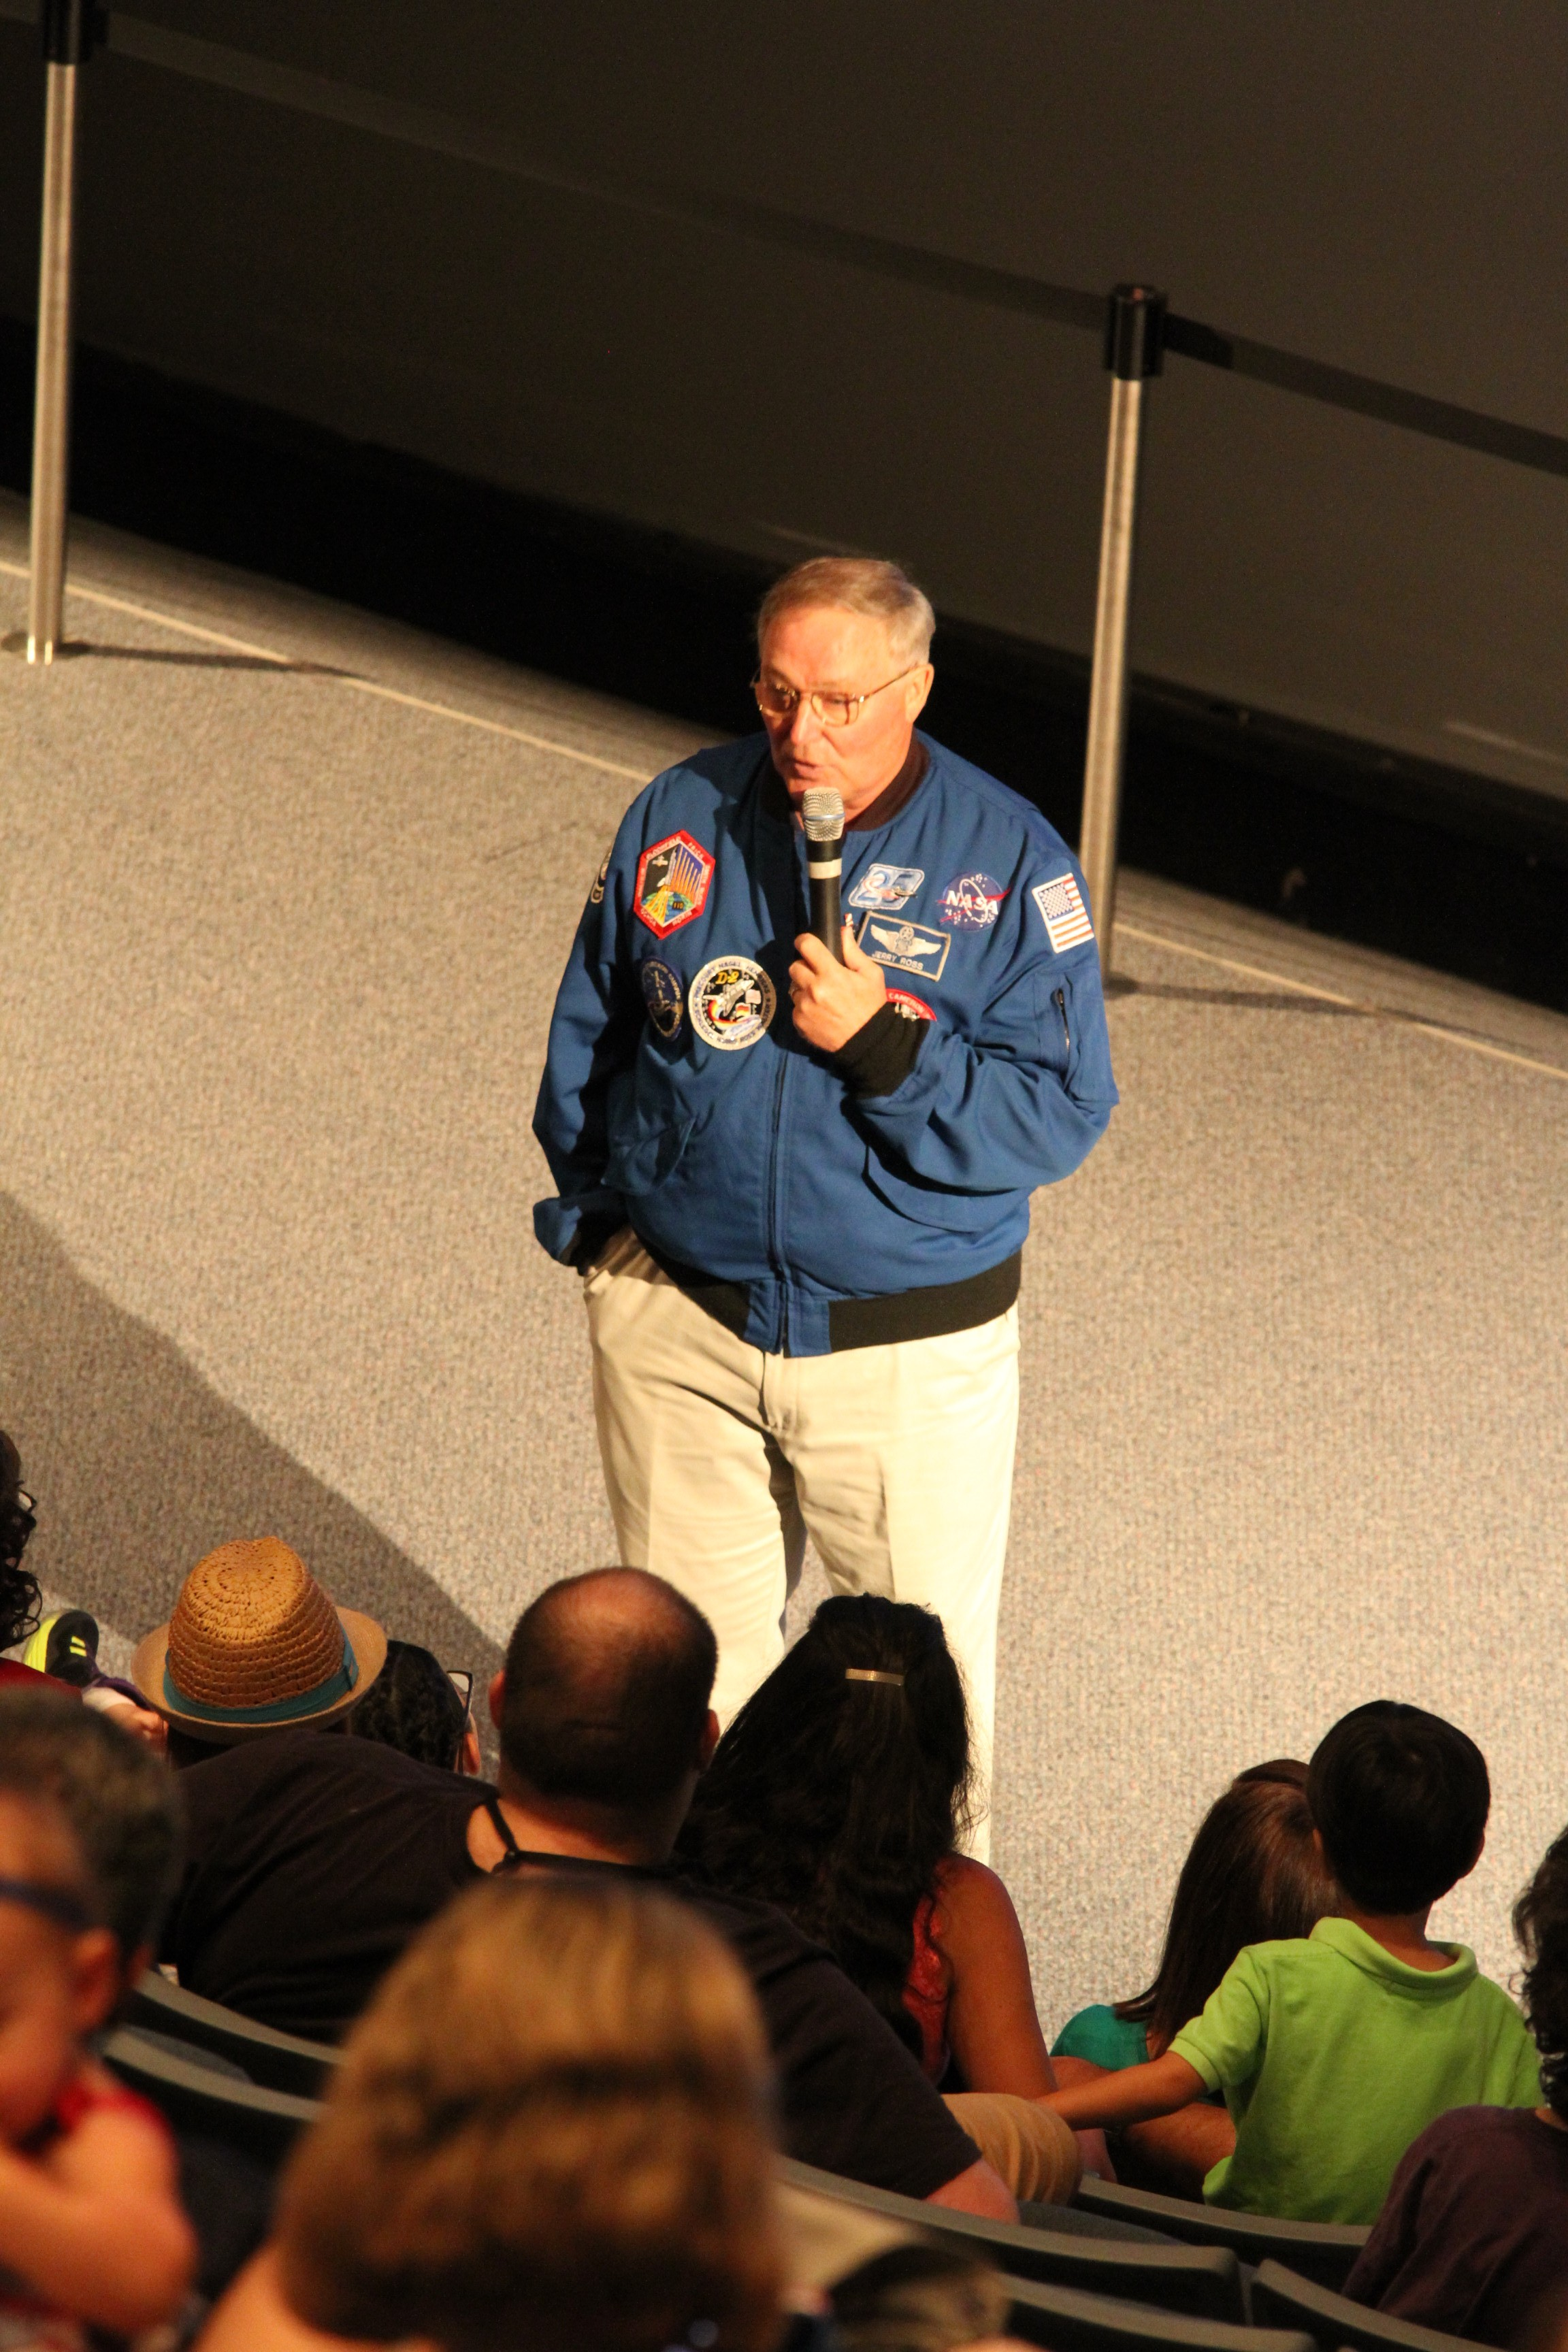 Astronaut Jerry Ross